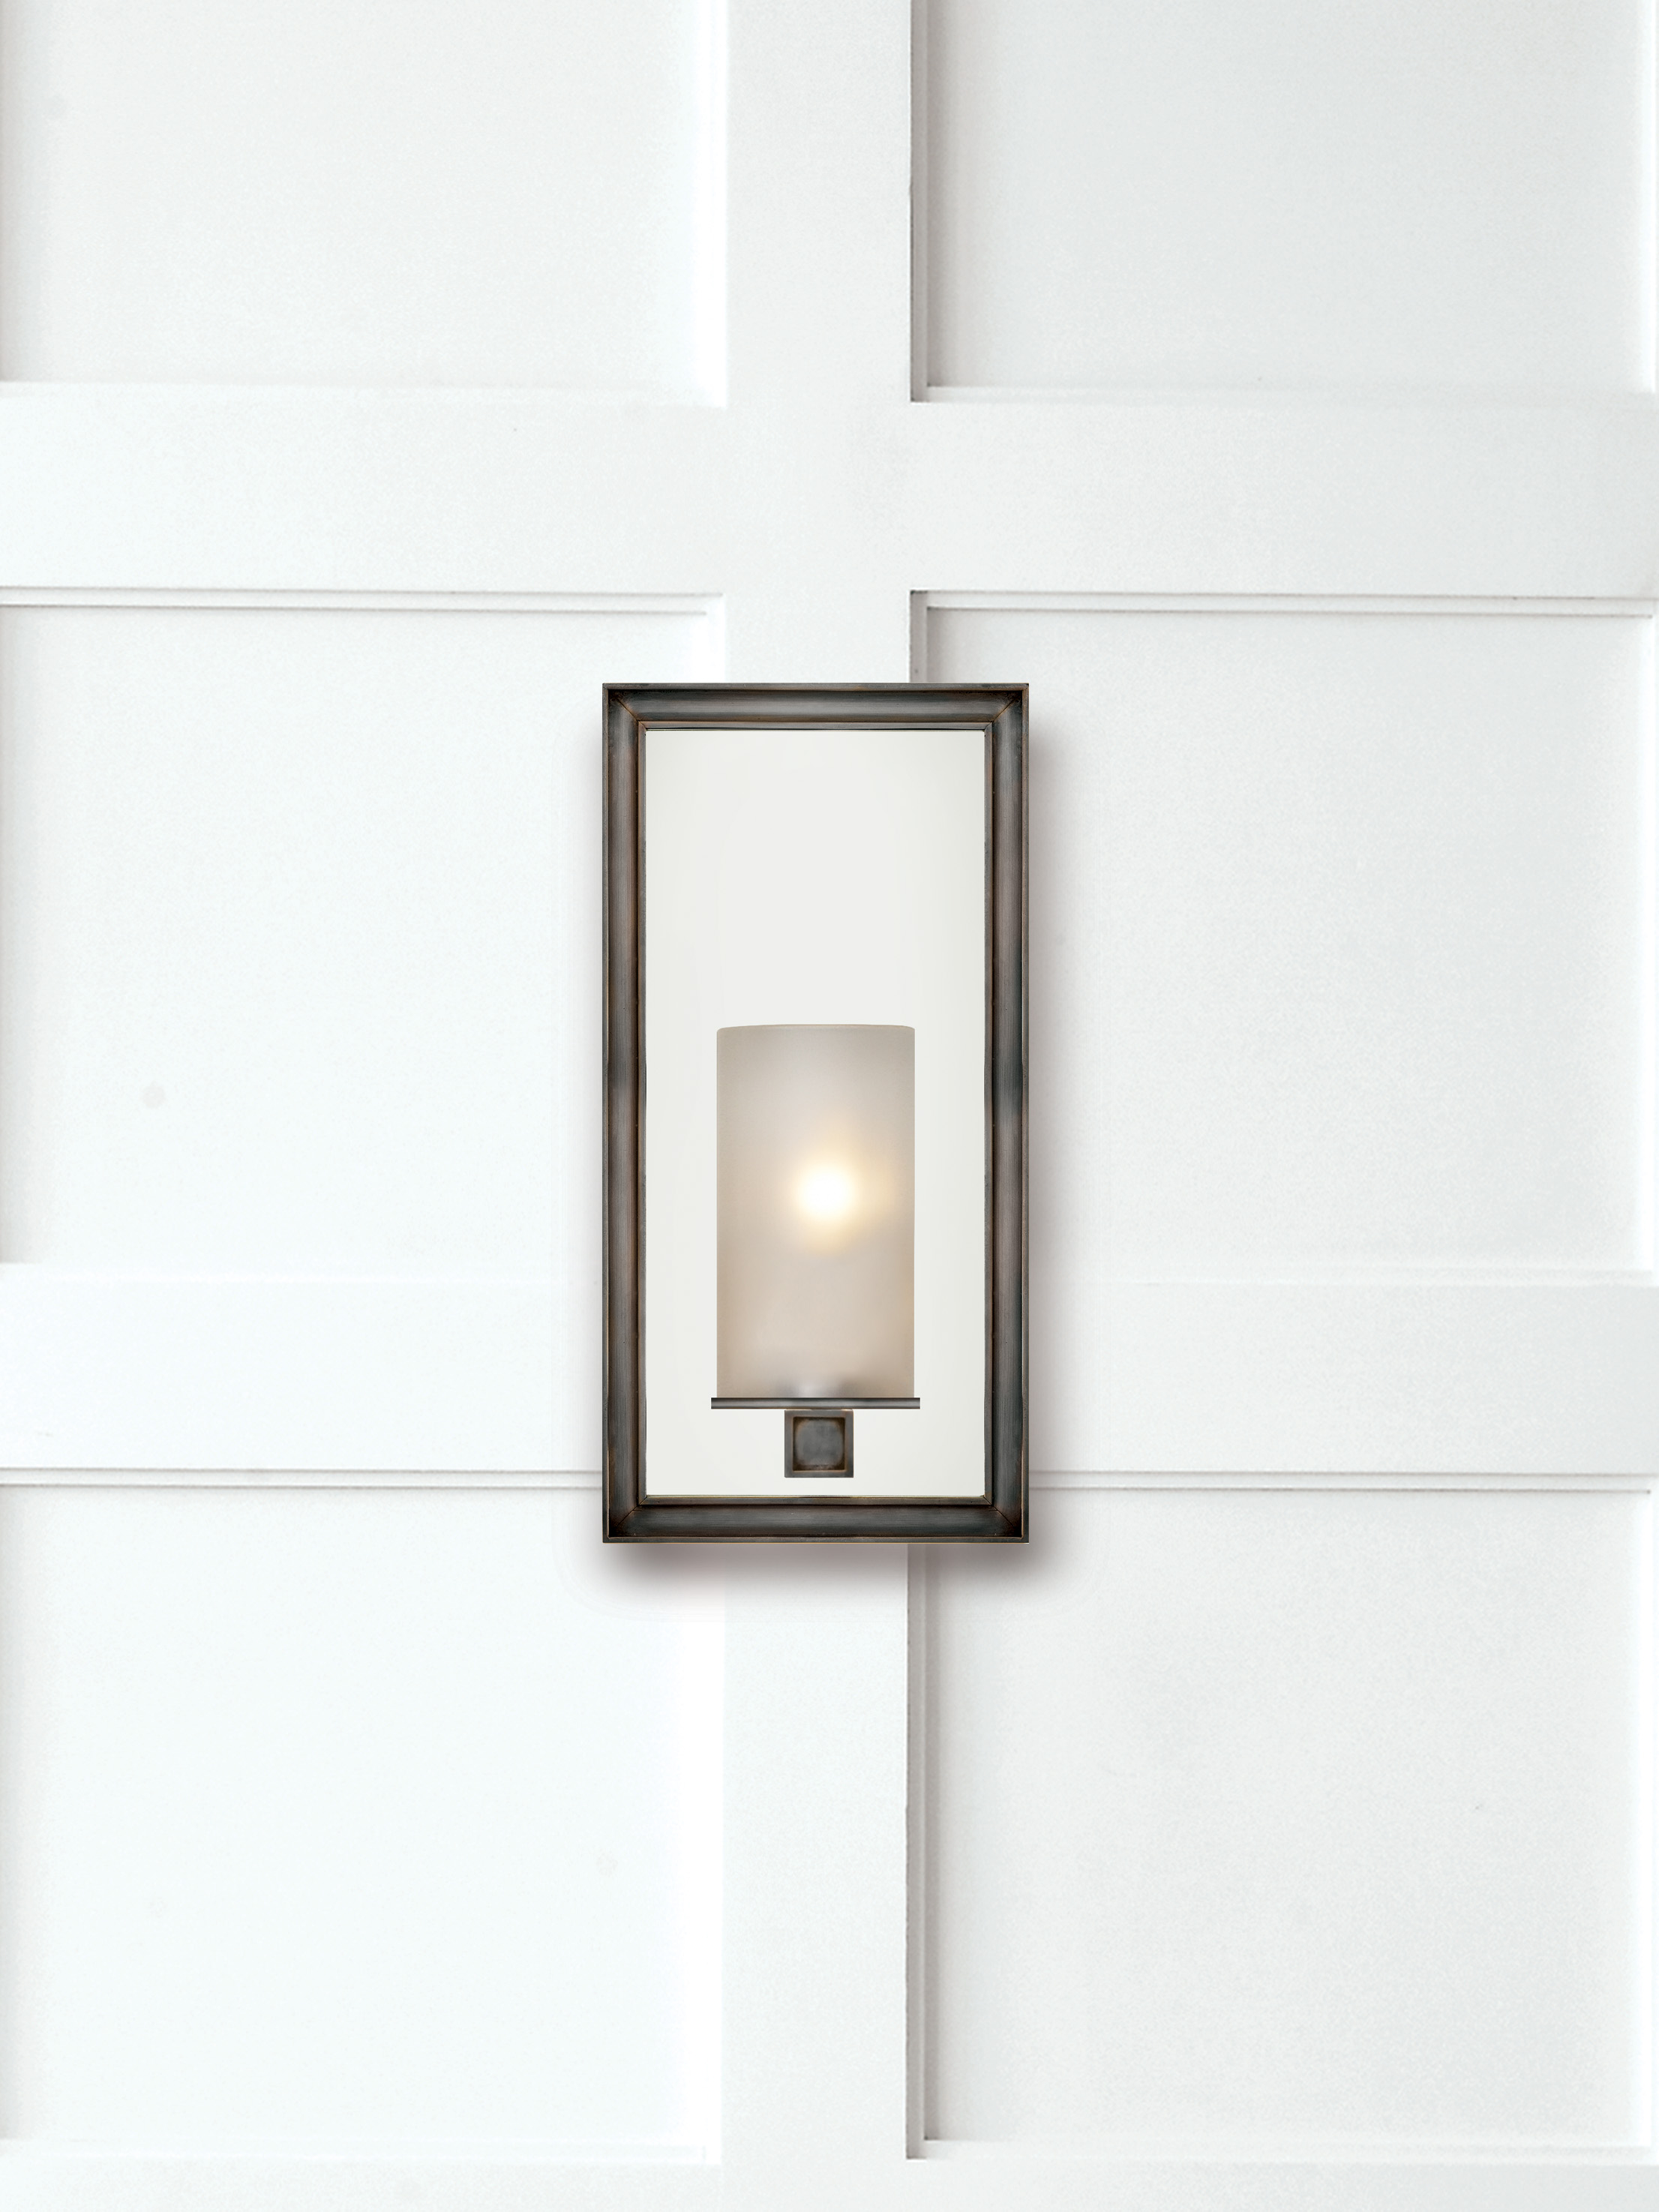 kasler wall iron aged cfm shield quatrefoil inch sconce shown in and wide visual suzanne item linen comfort finish shade